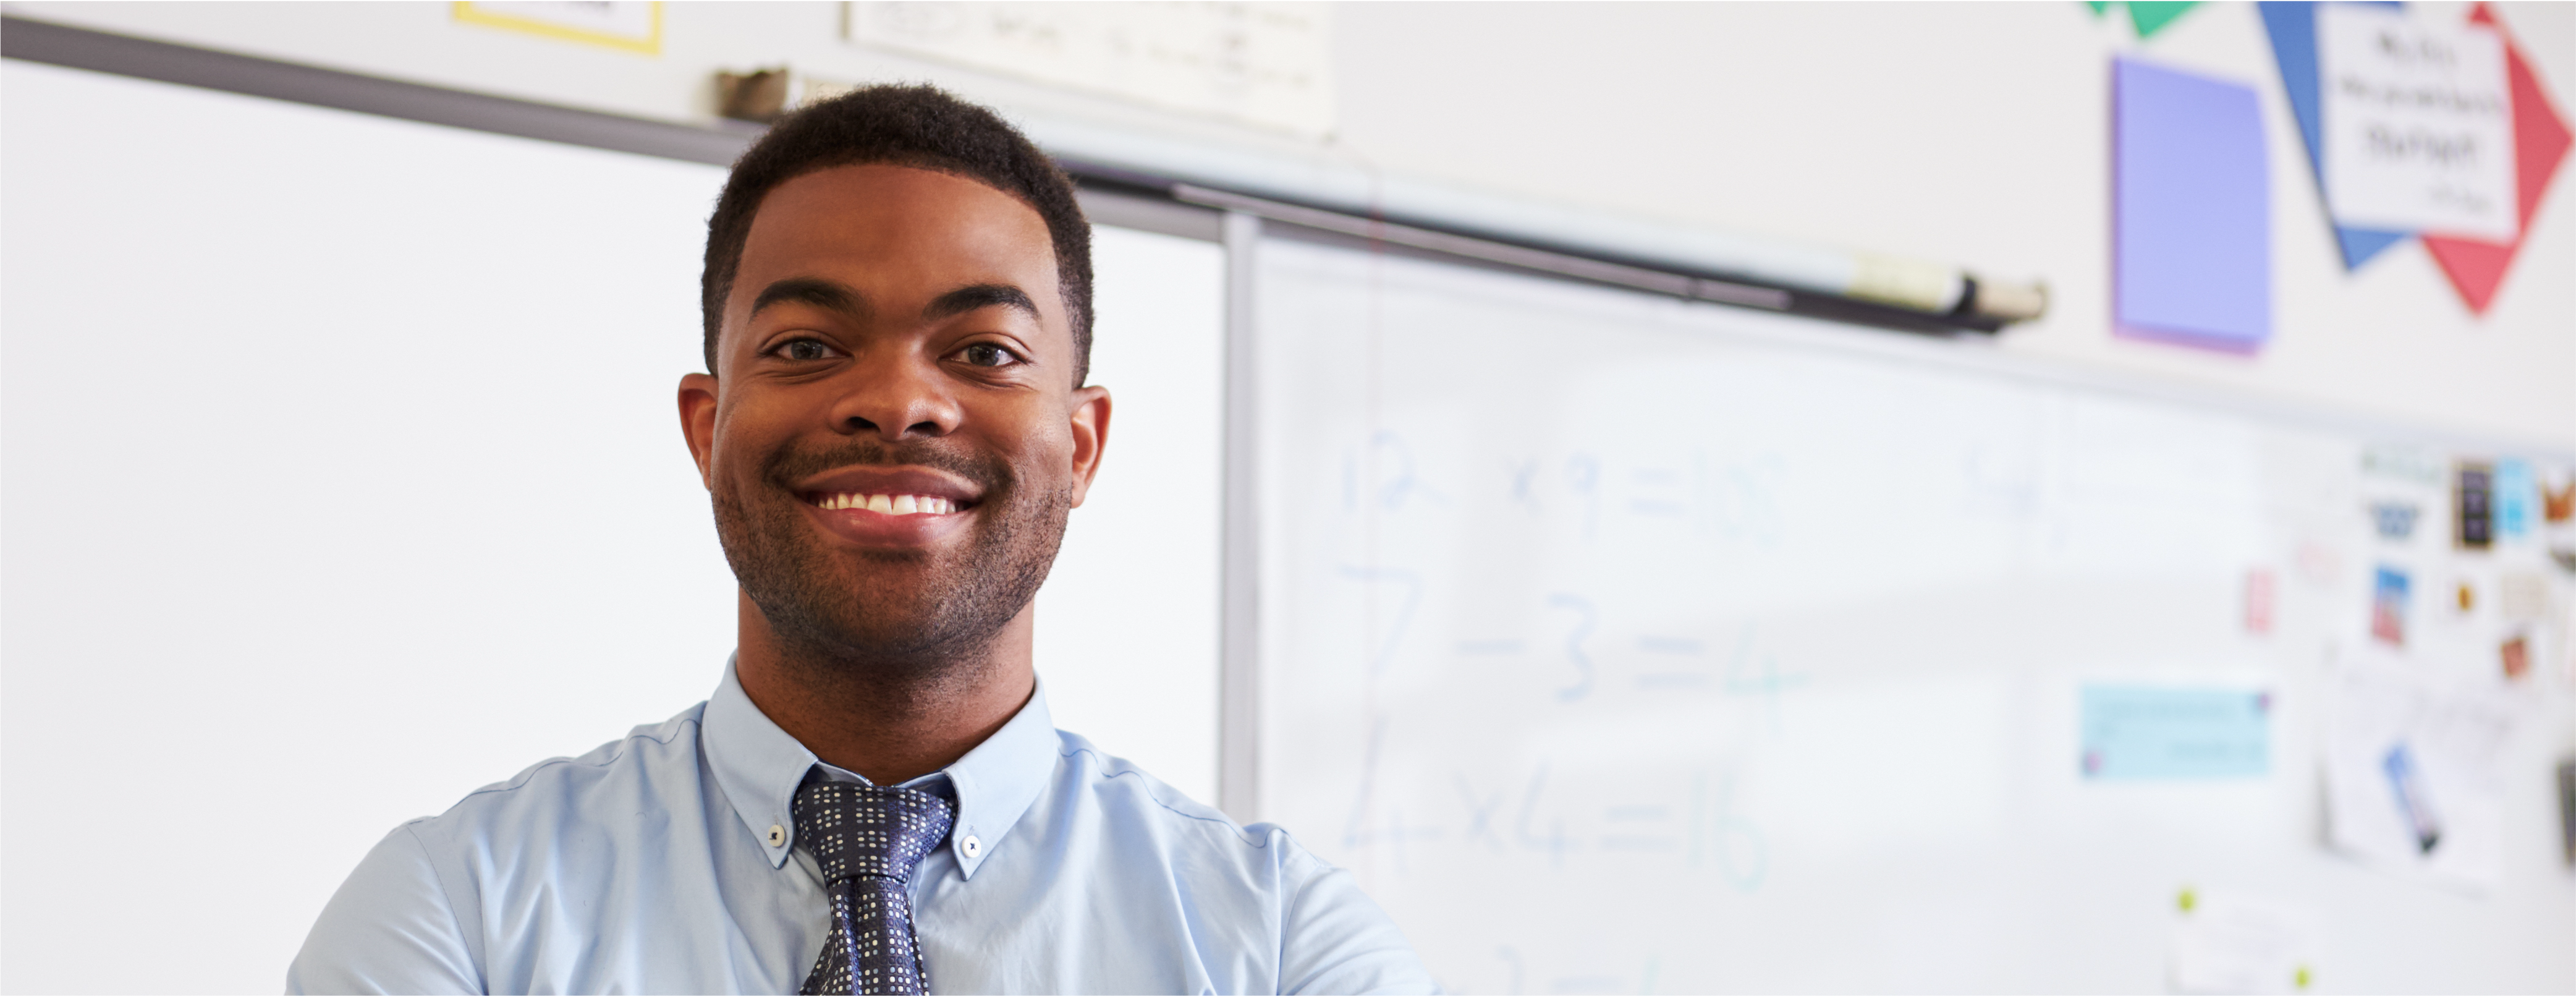 A teacher smiles and stands in front of a whiteboard in his classroom.